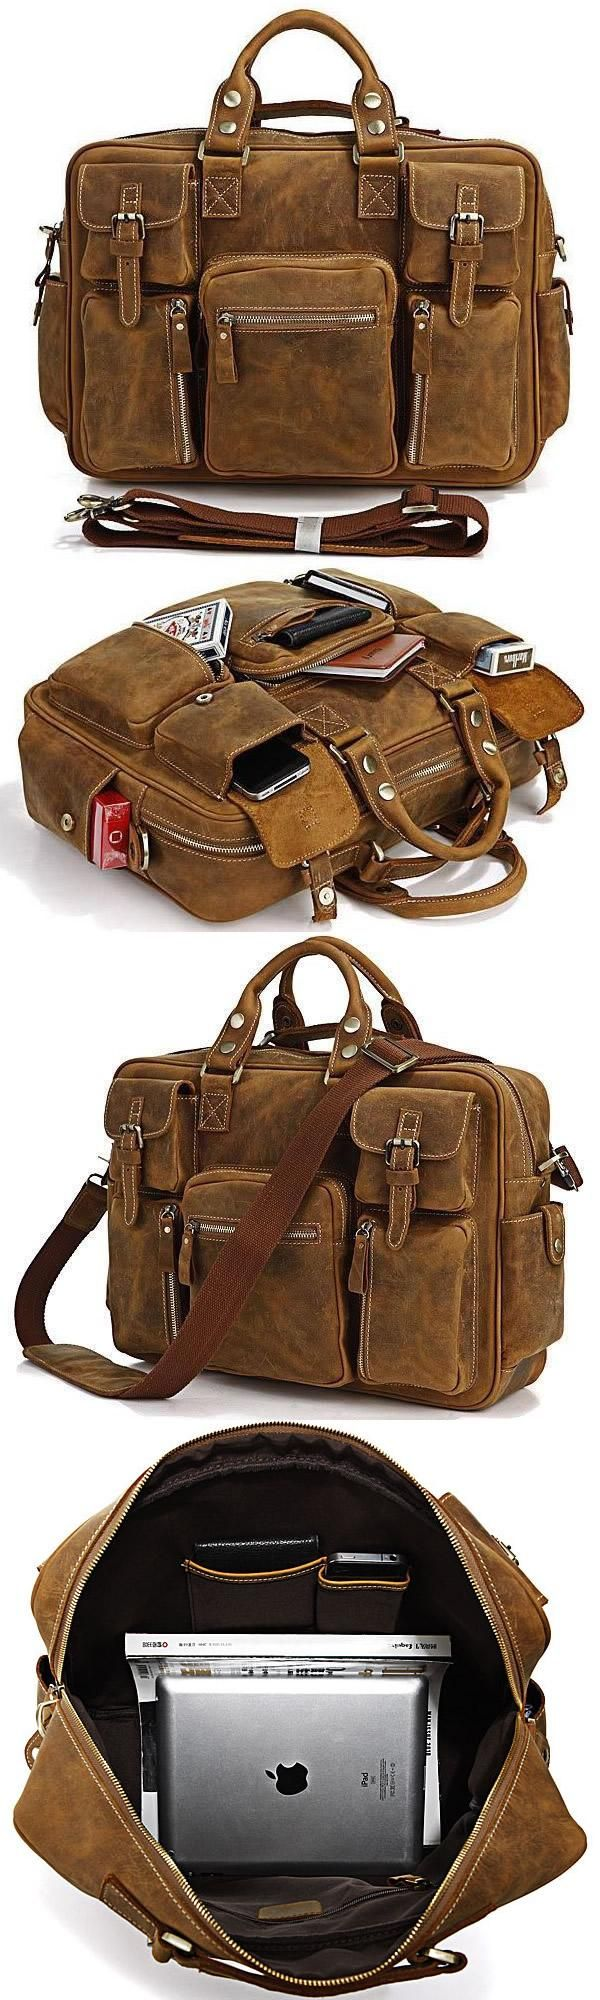 best thoi trang images on pinterest bag men briefcases and